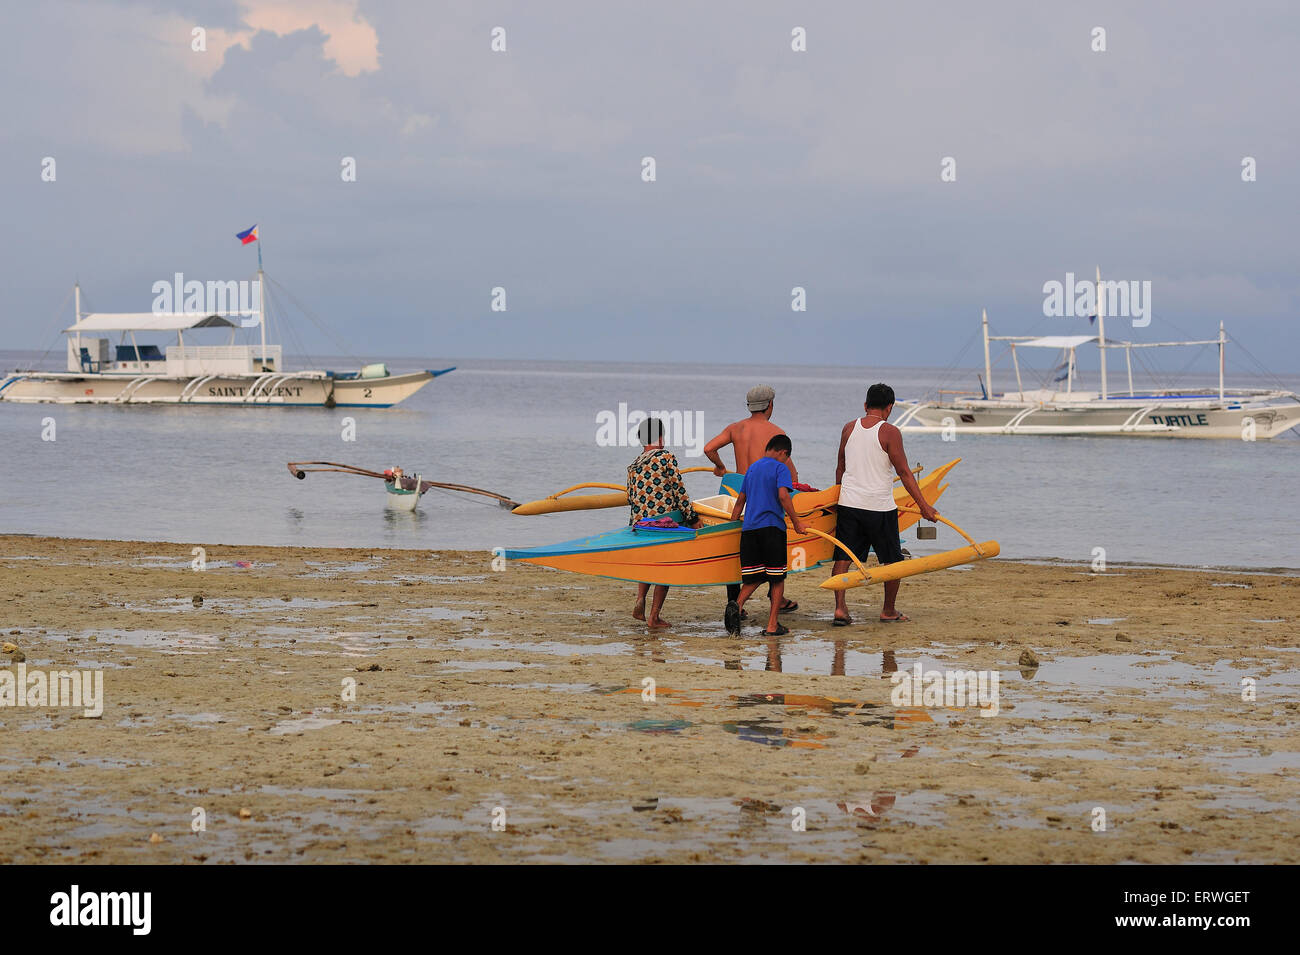 Young Filipinos carrying fishing boat to water's edge Panagsama Beach Moalboal Philippines - Stock Image